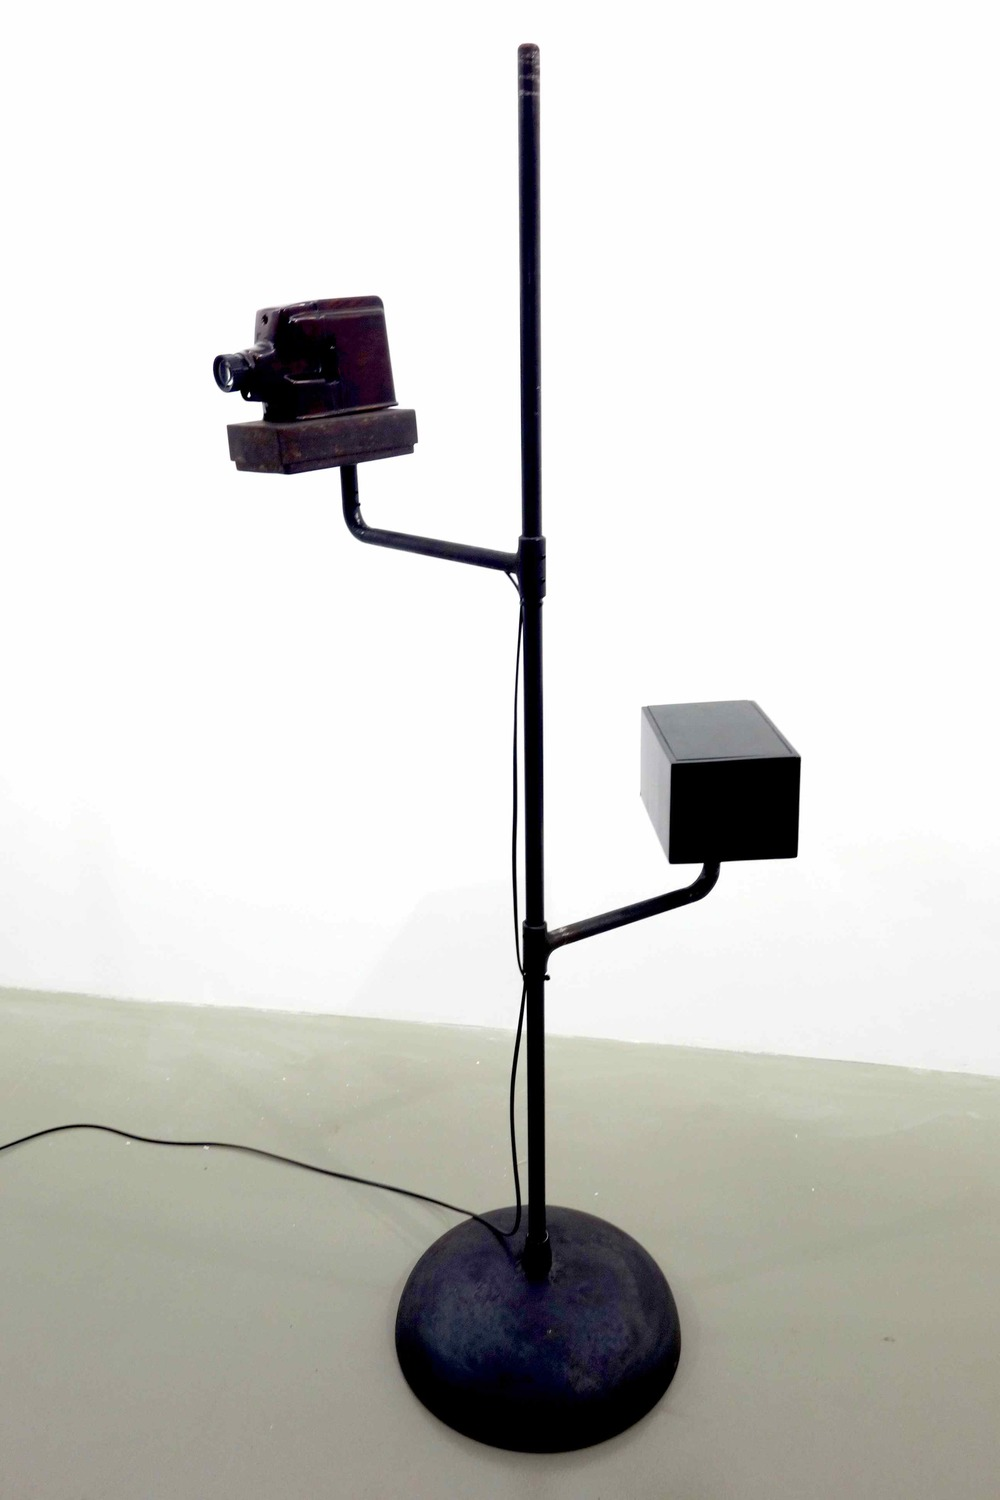 Lacquerscope #6  2014 Son Ta lacquered metal small format (35mm) projector. Iron stand, base and swivel arms 174.5 x 99.3 cm